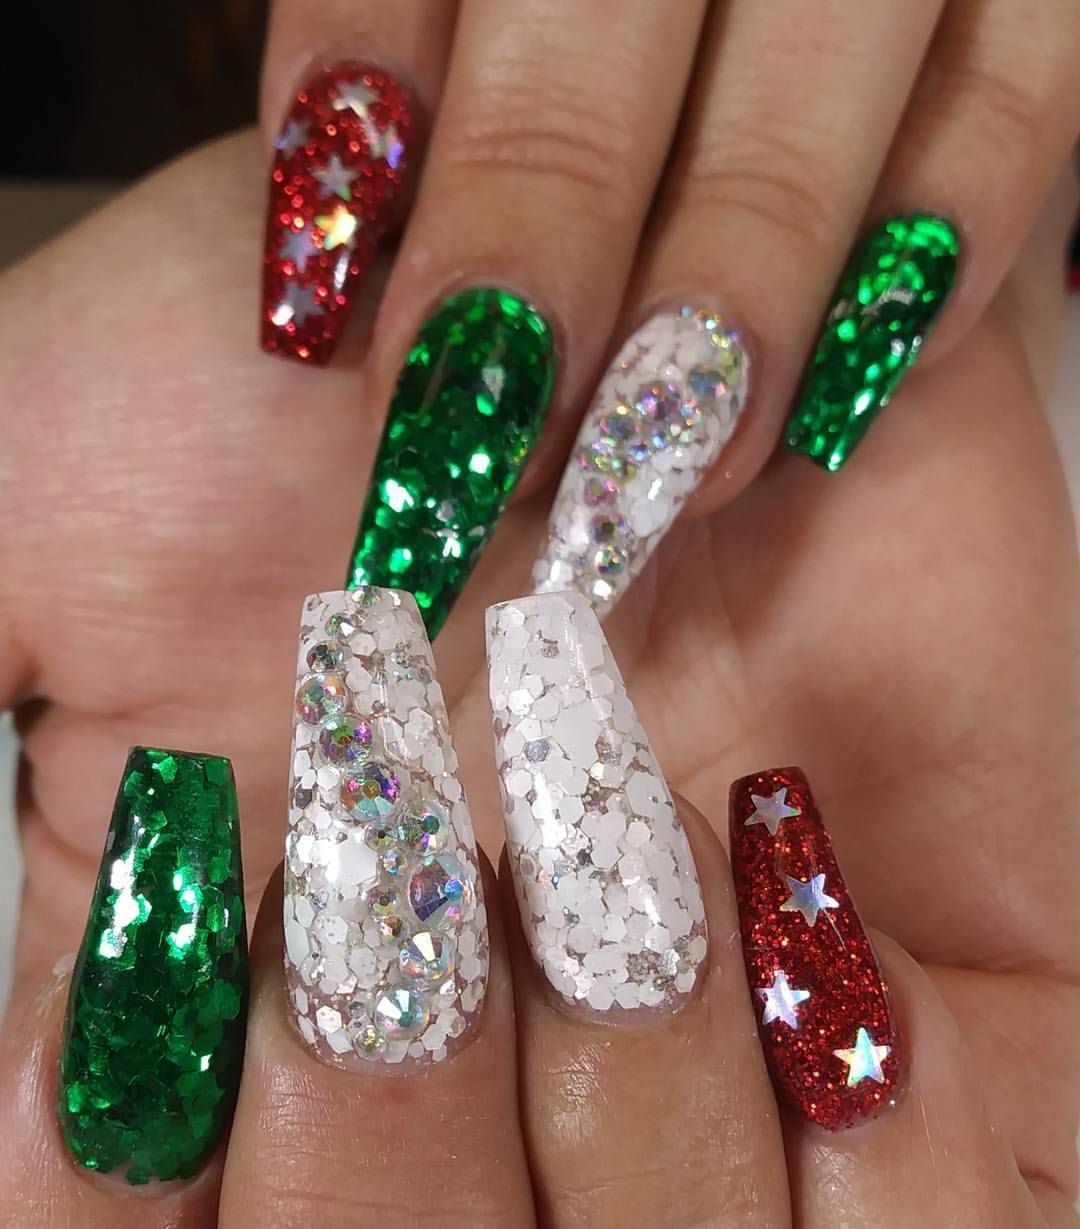 But not so long... short and squared | Nails | Pinterest ...